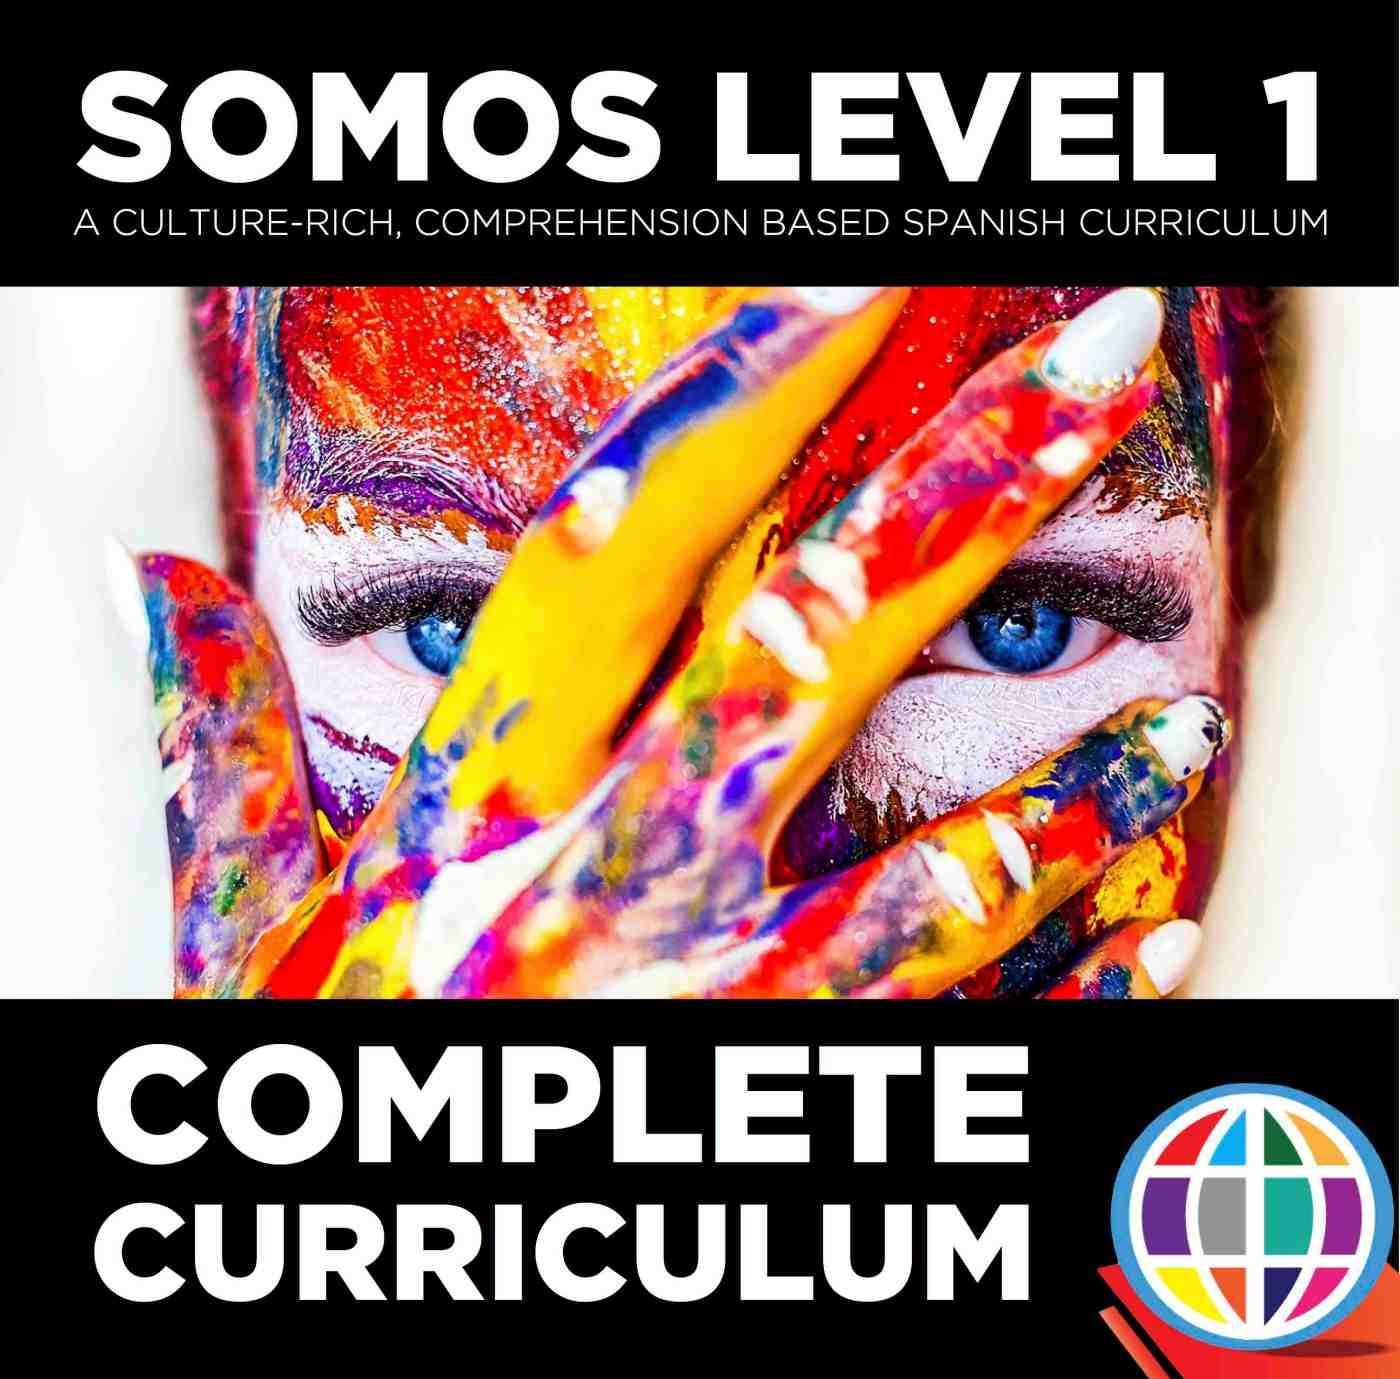 SOMOS Level 1: A culture-rich, comprehension-based Spanish curriculum